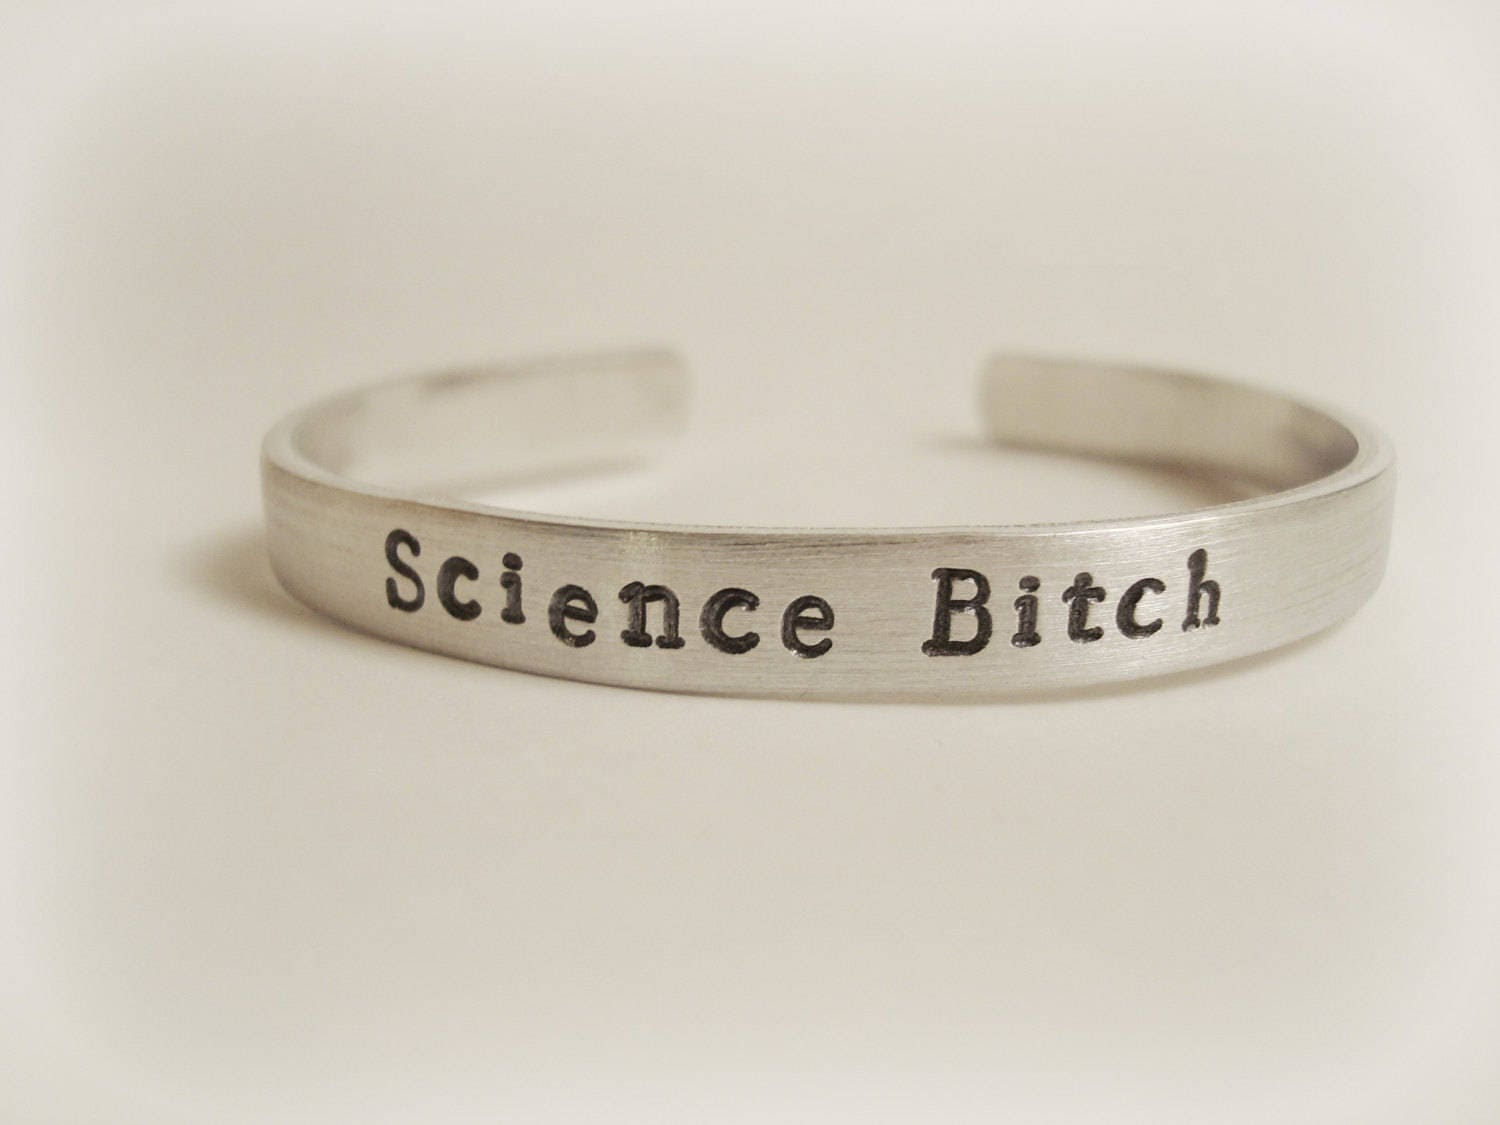 Science Bitch Hand Stamped Breaking Bad Aluminum Bracelet